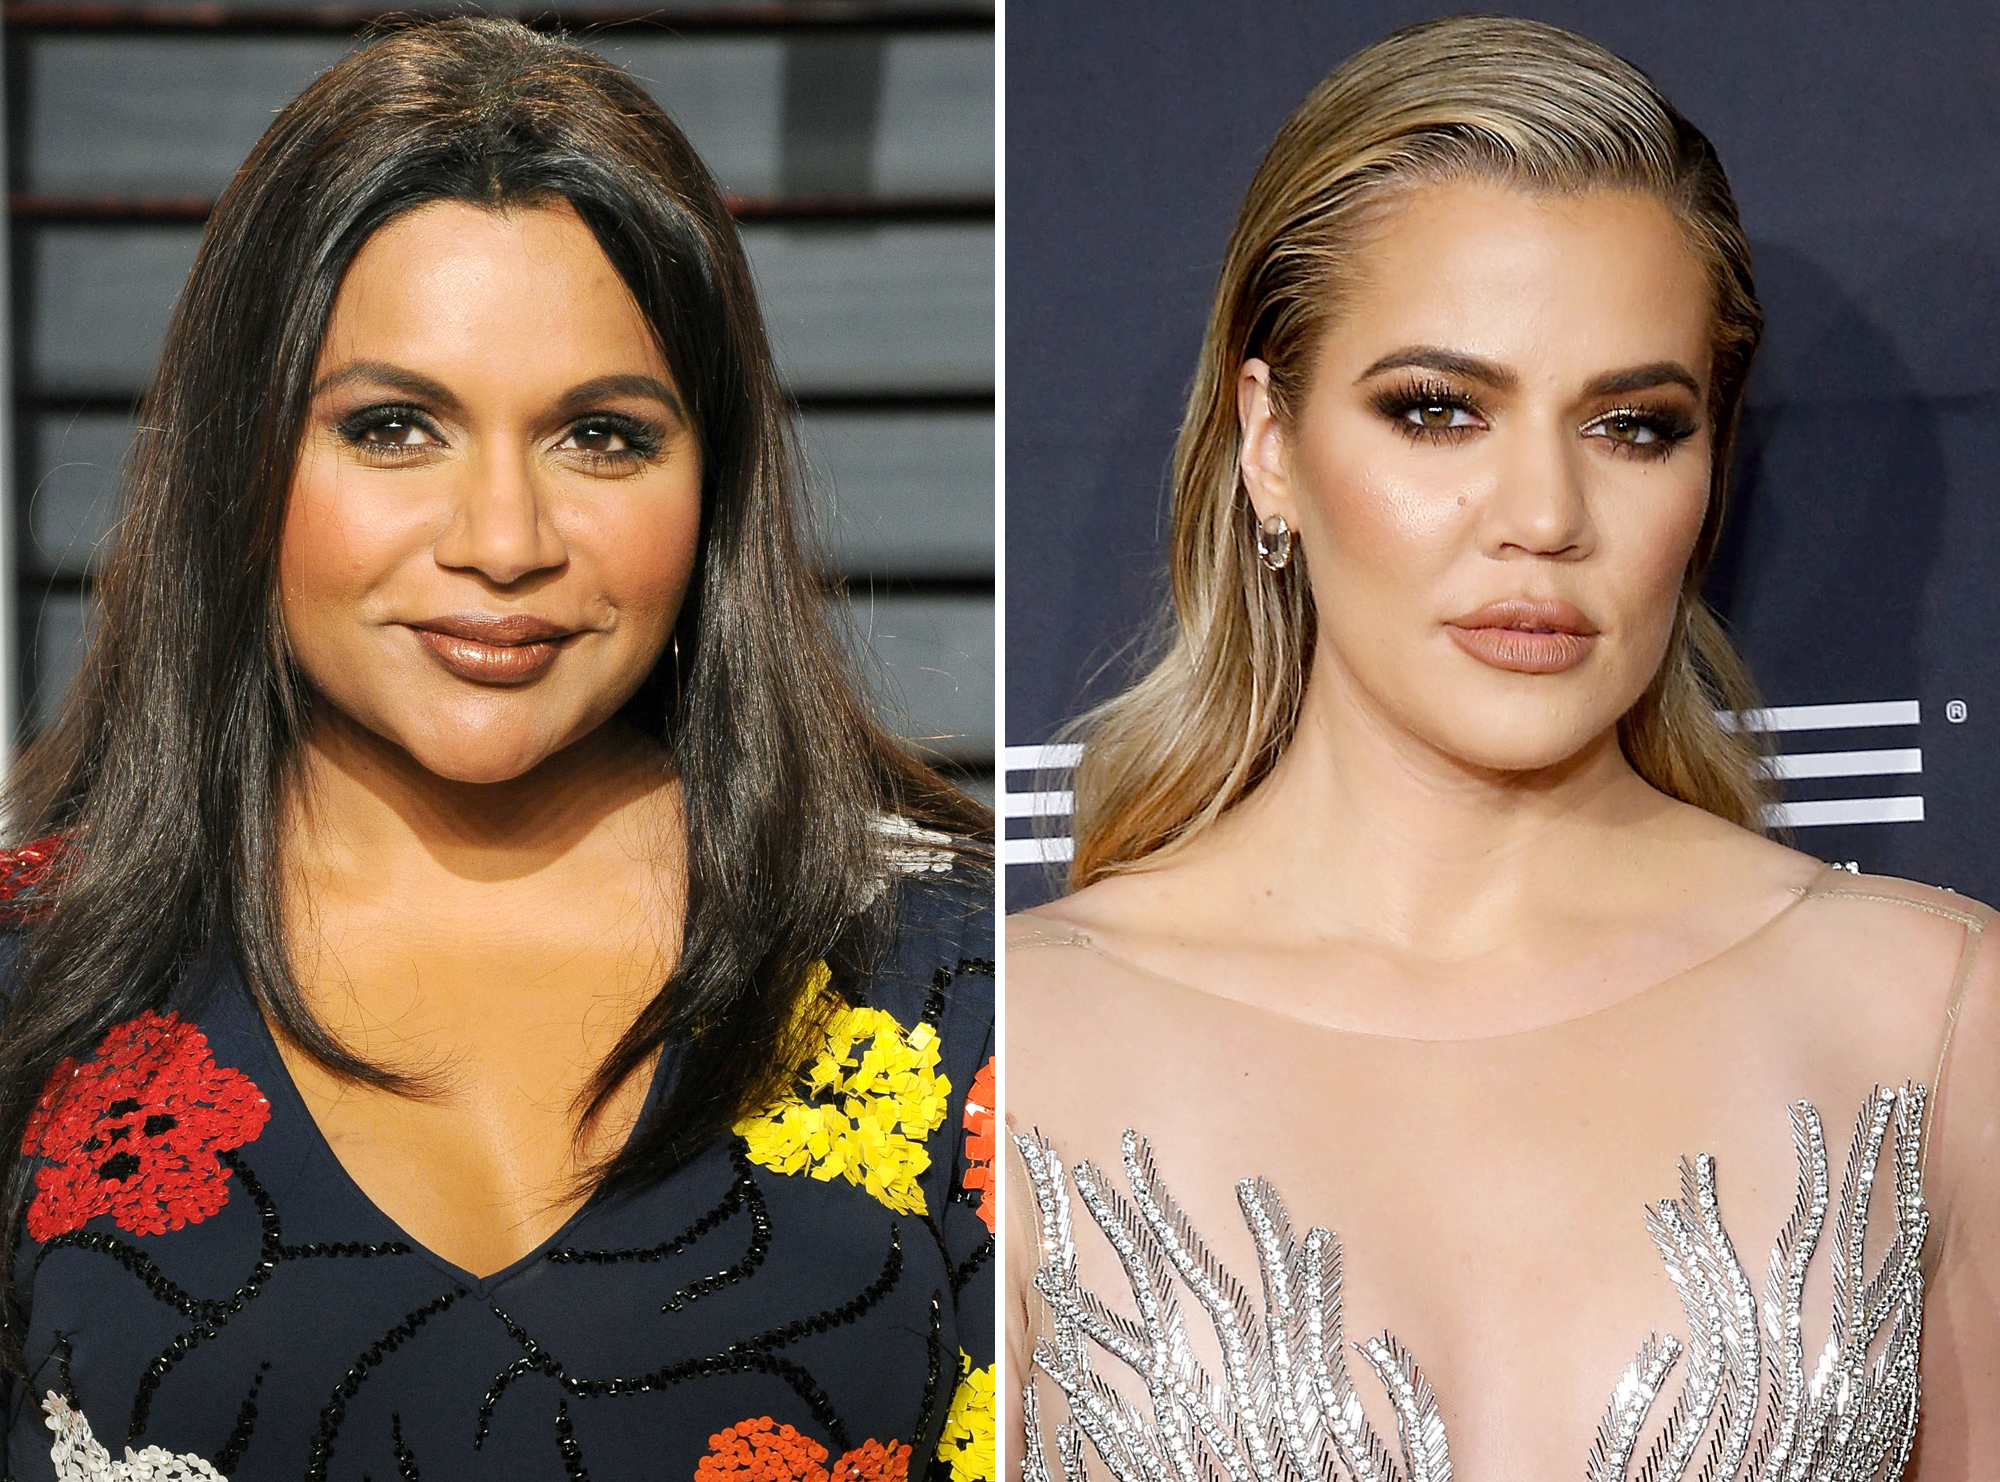 Khloe Kardashian and Mindy Kaling Swear By This $10 Face Mask